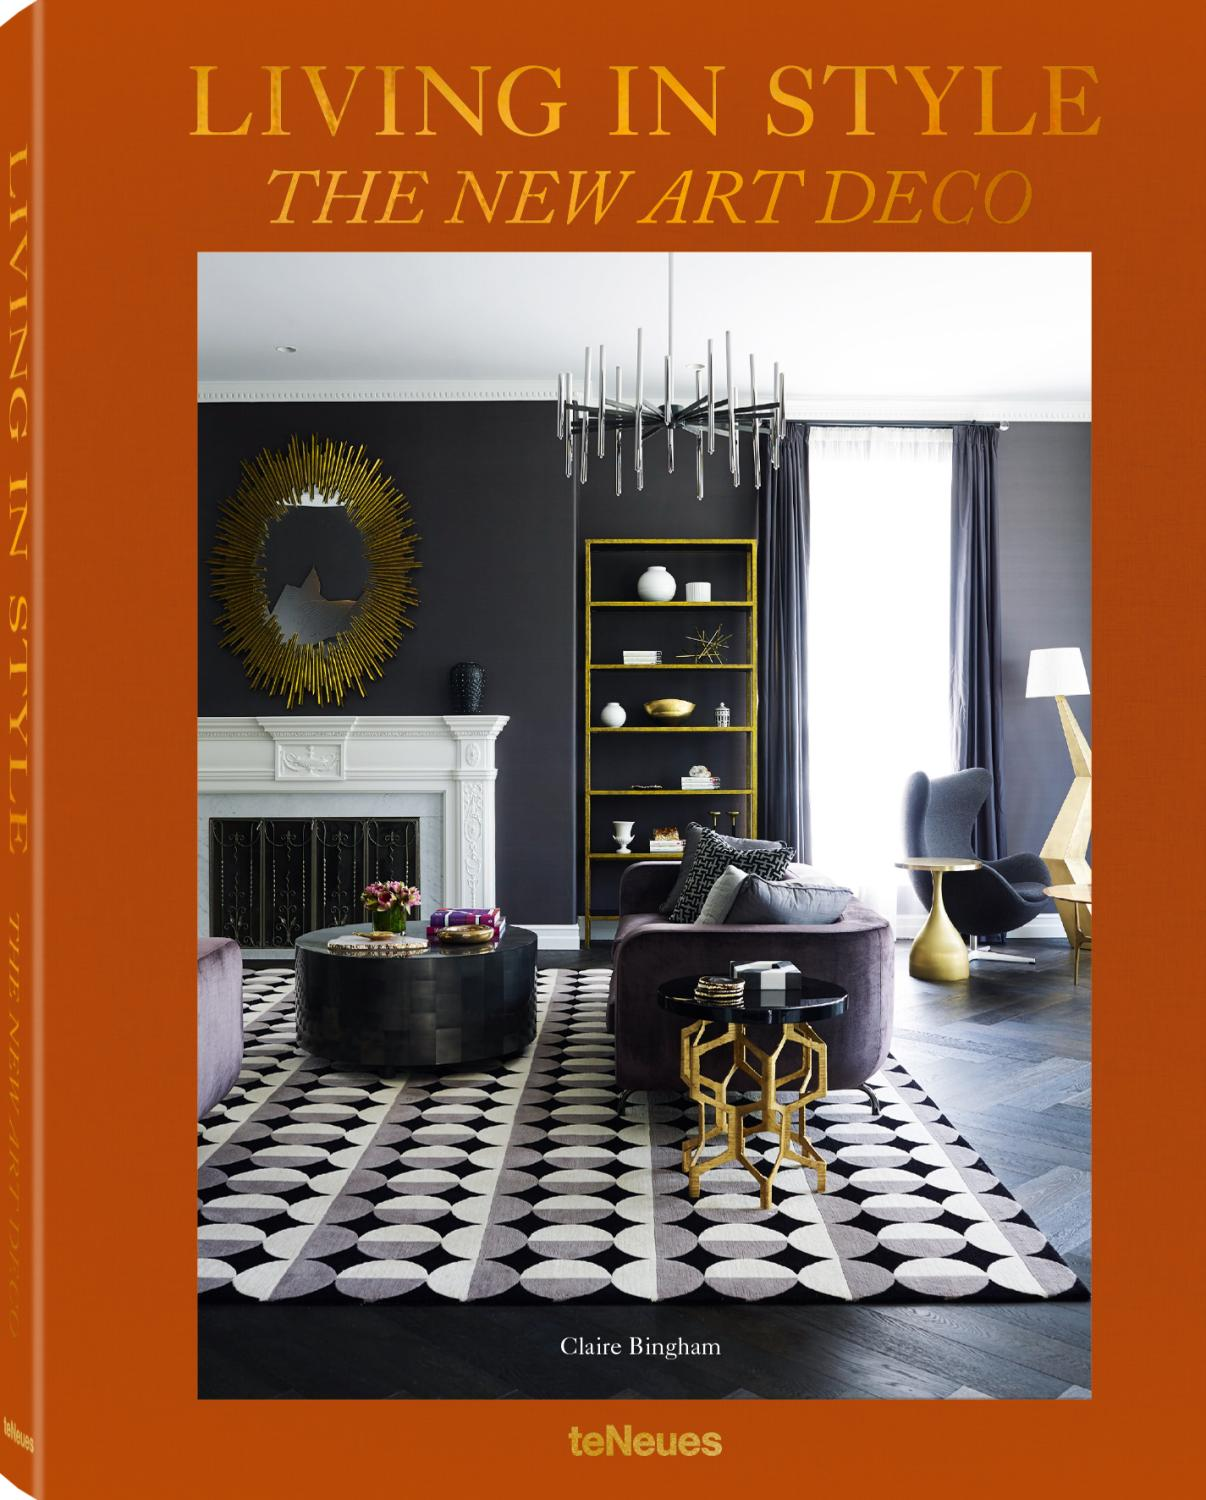 Living in Style The New Art Deco - Claire Bingham